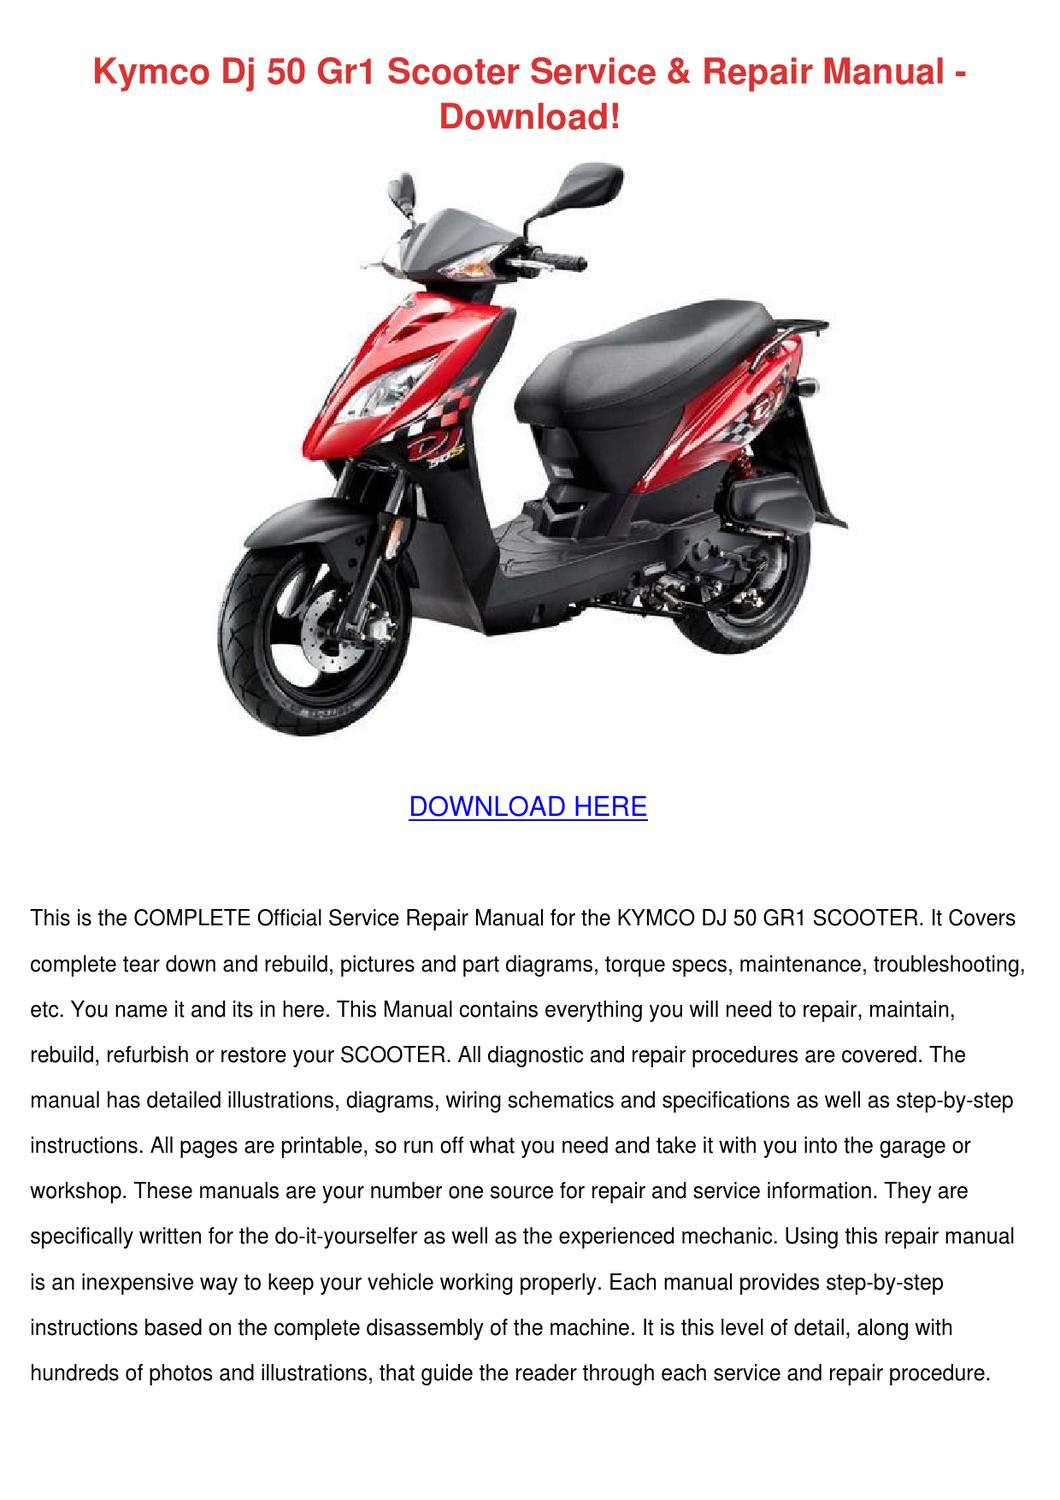 Kymco Dj 50 Gr1 Scooter Service Repair Manual By Teenarodrigues Issuu